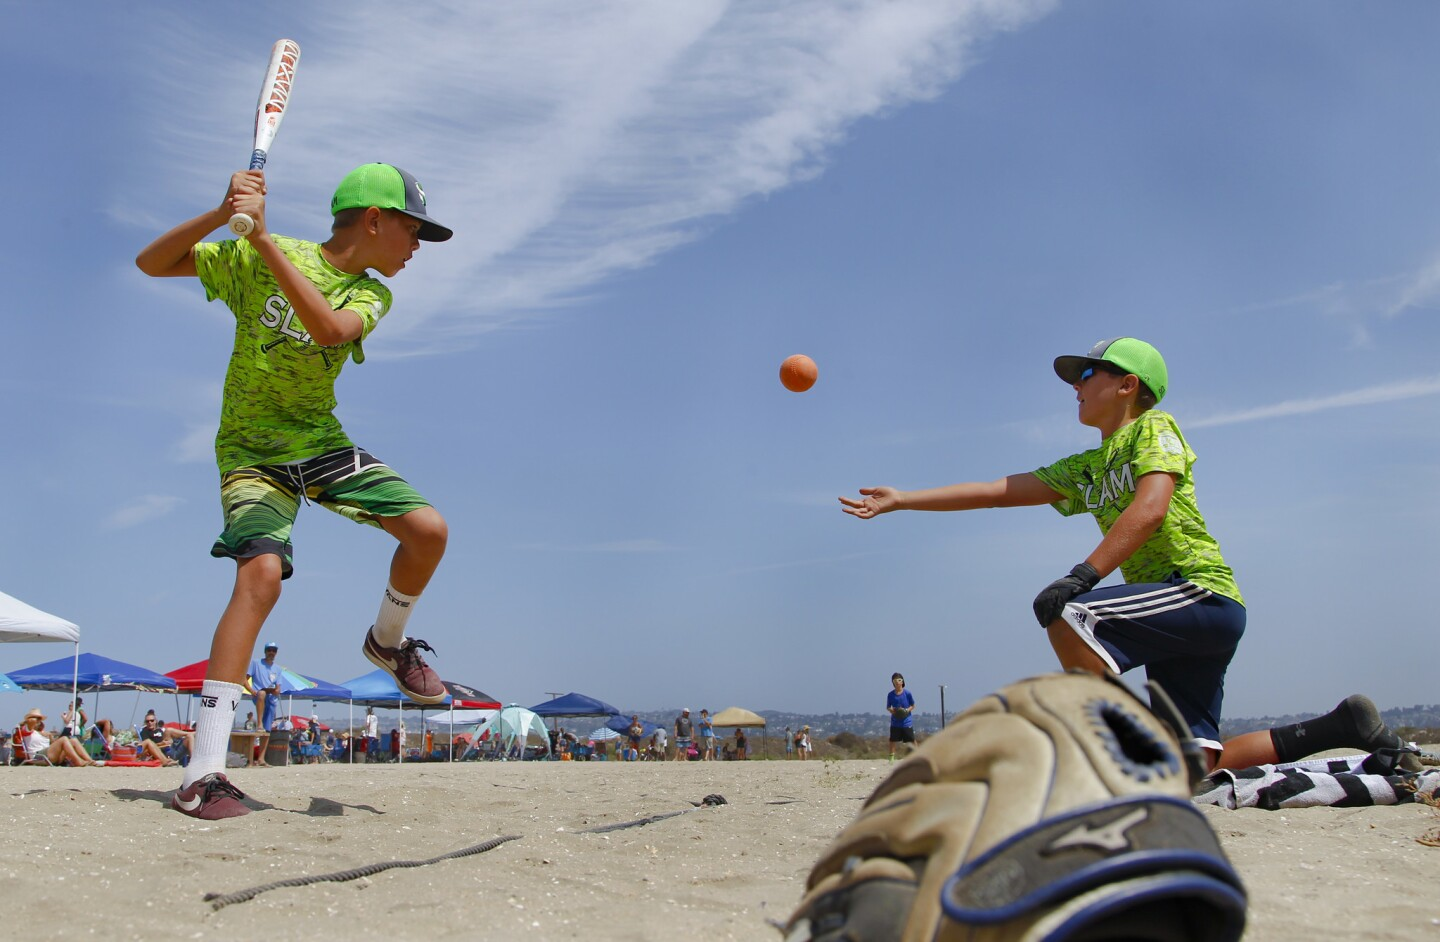 Max Snakenborg takes a pitch from teammate, Colton walker during tournament play agains the Best Mates in the OMBAC Junior OTL Tournament on Fiesta Island.